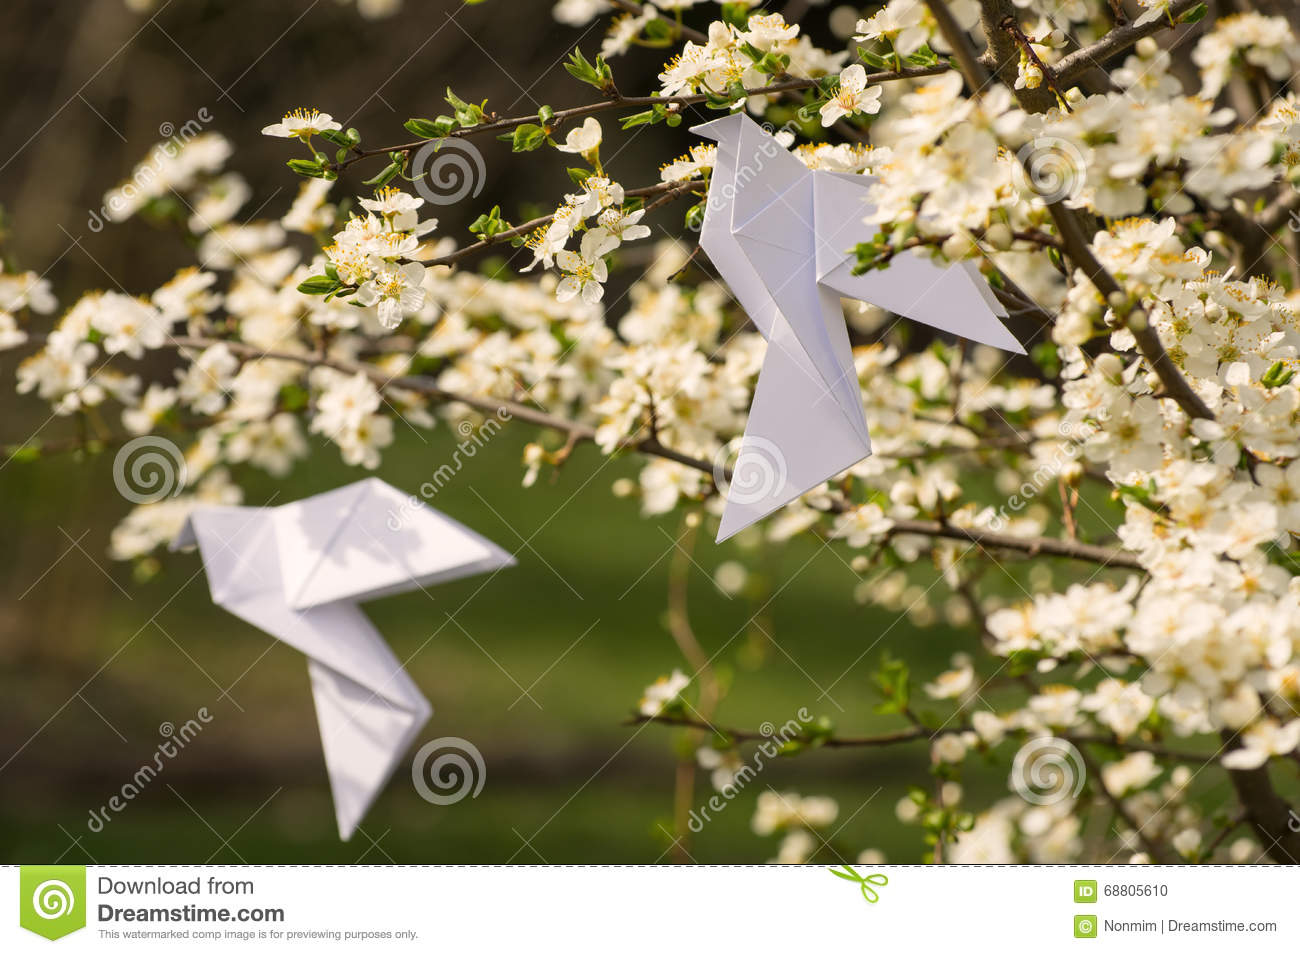 Origami Dove On Blooming Spring Tree Stock Photo - Image ... - photo#48